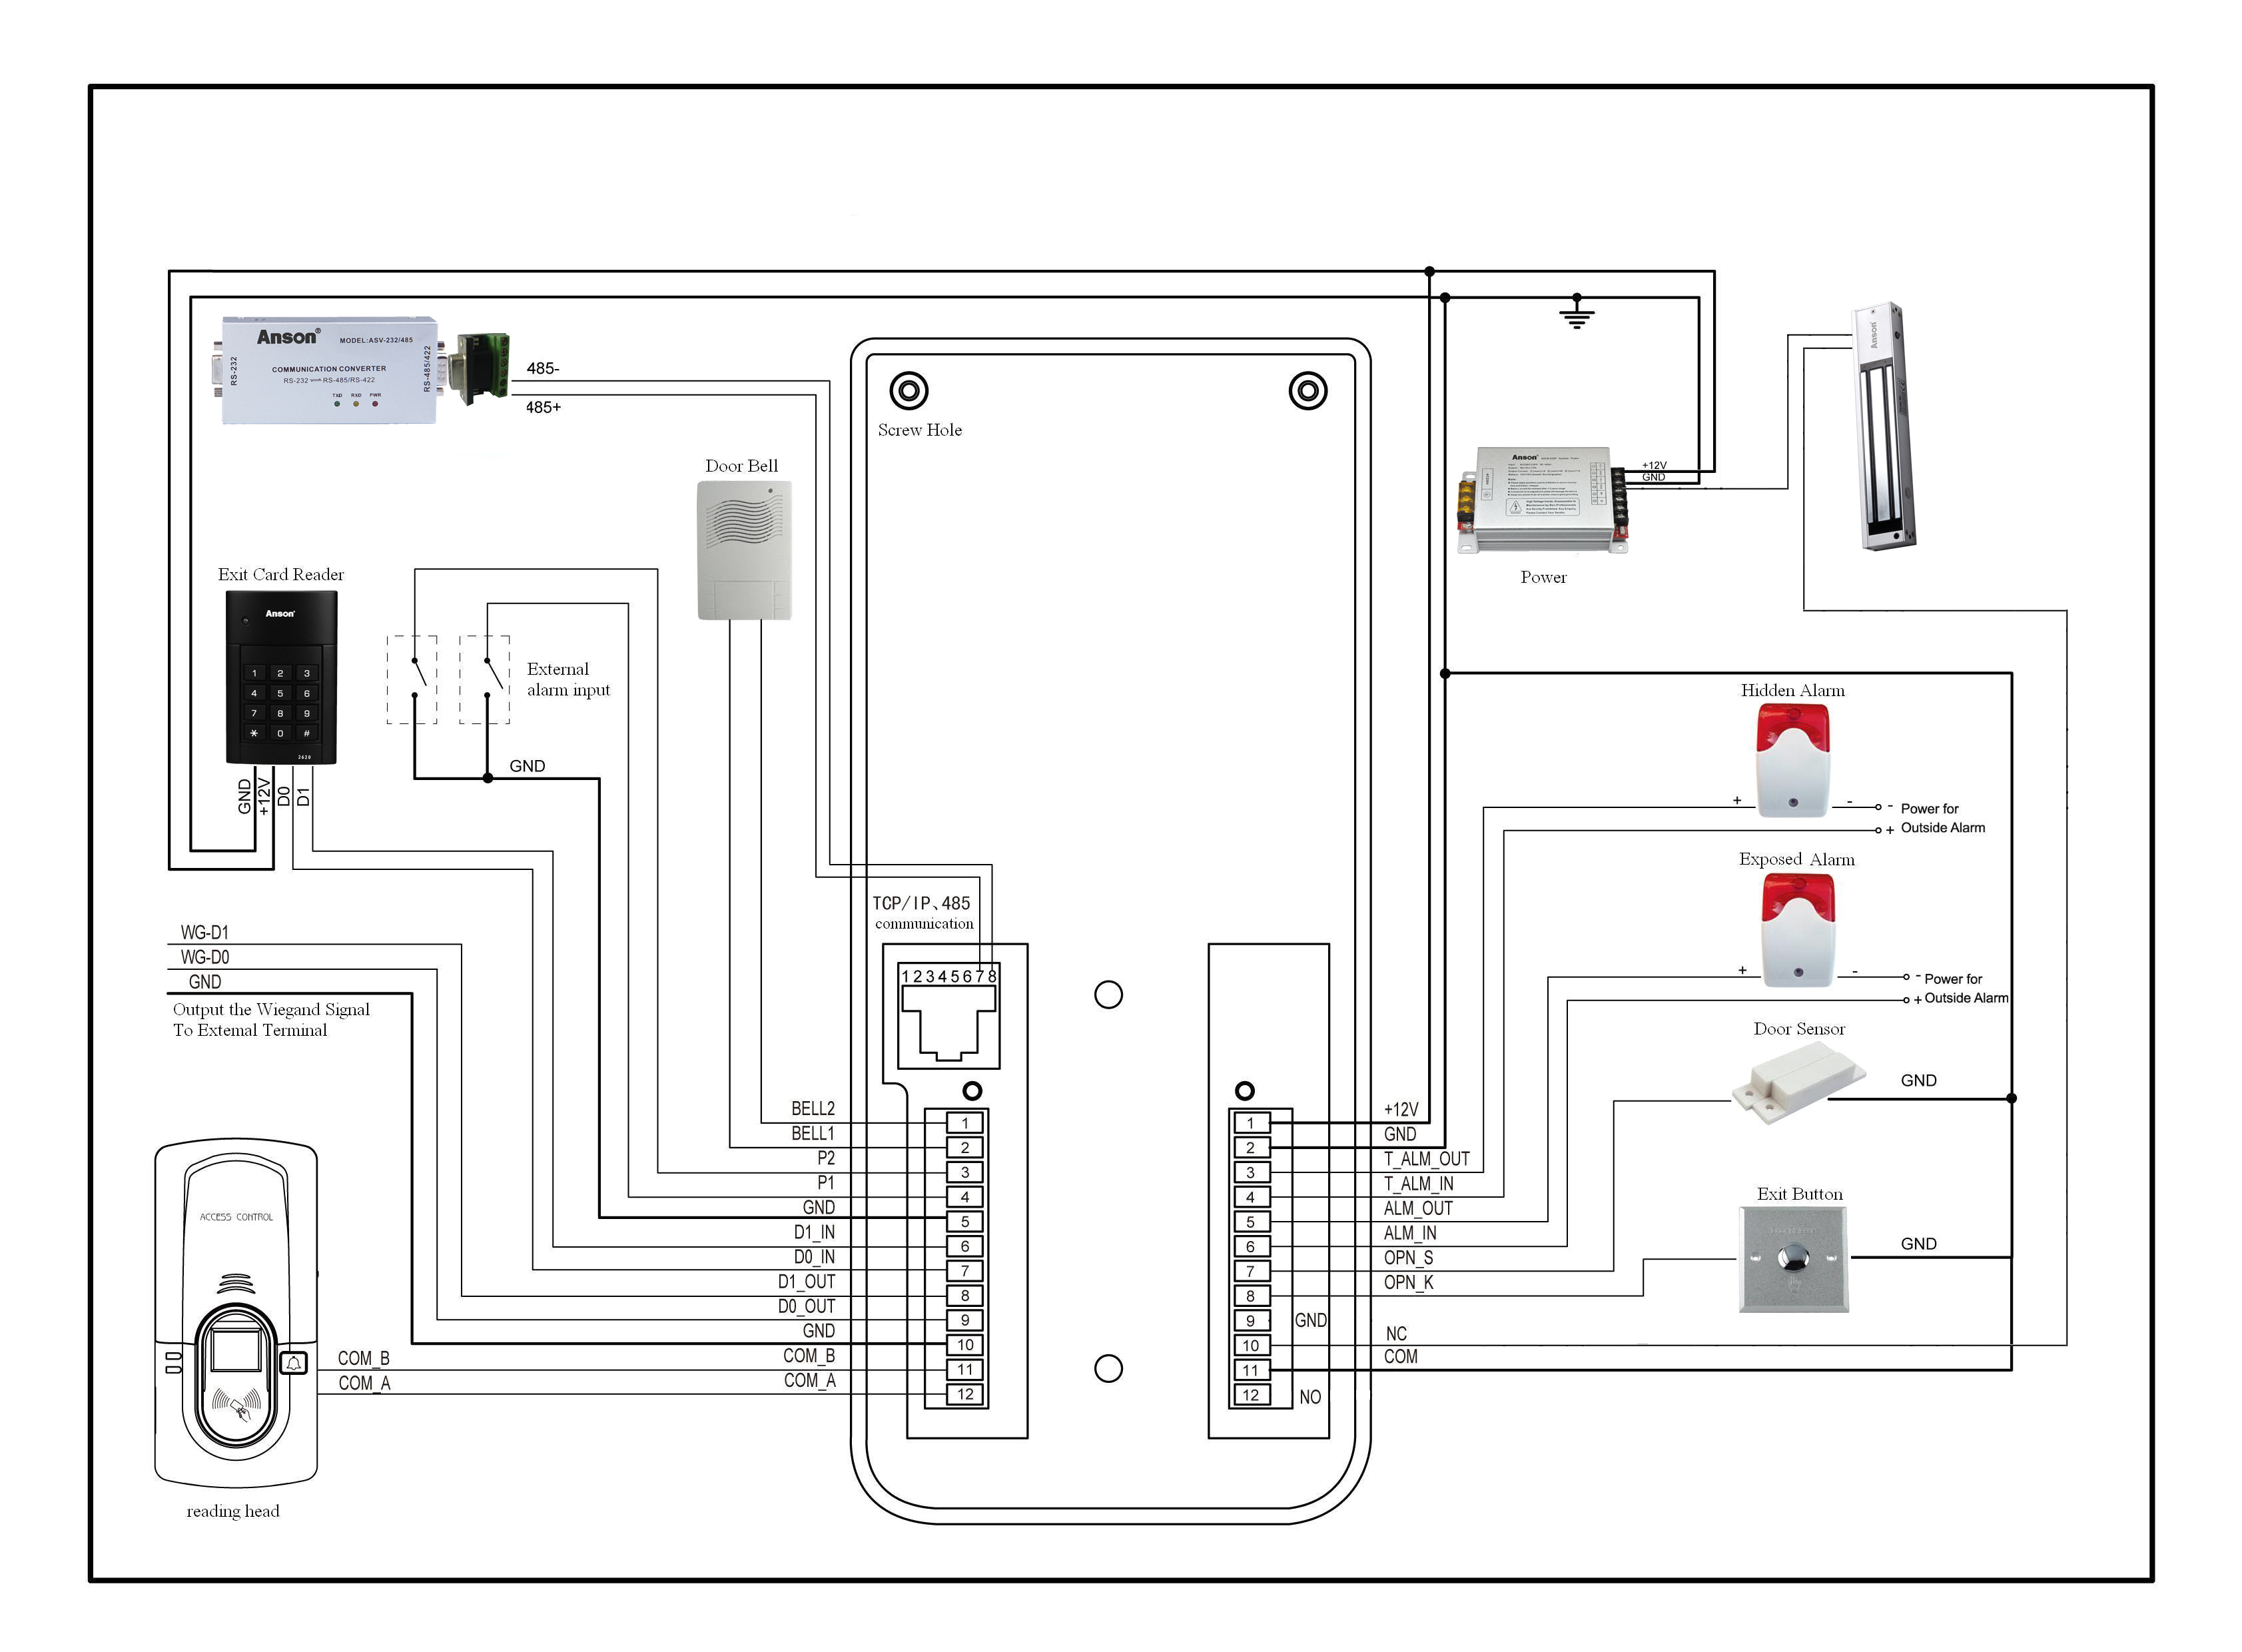 intercom speaker wiring diagrams wiring diagram repair guides dmc1 wiring diagram wiring diagramdmc1 wiring diagram wiring